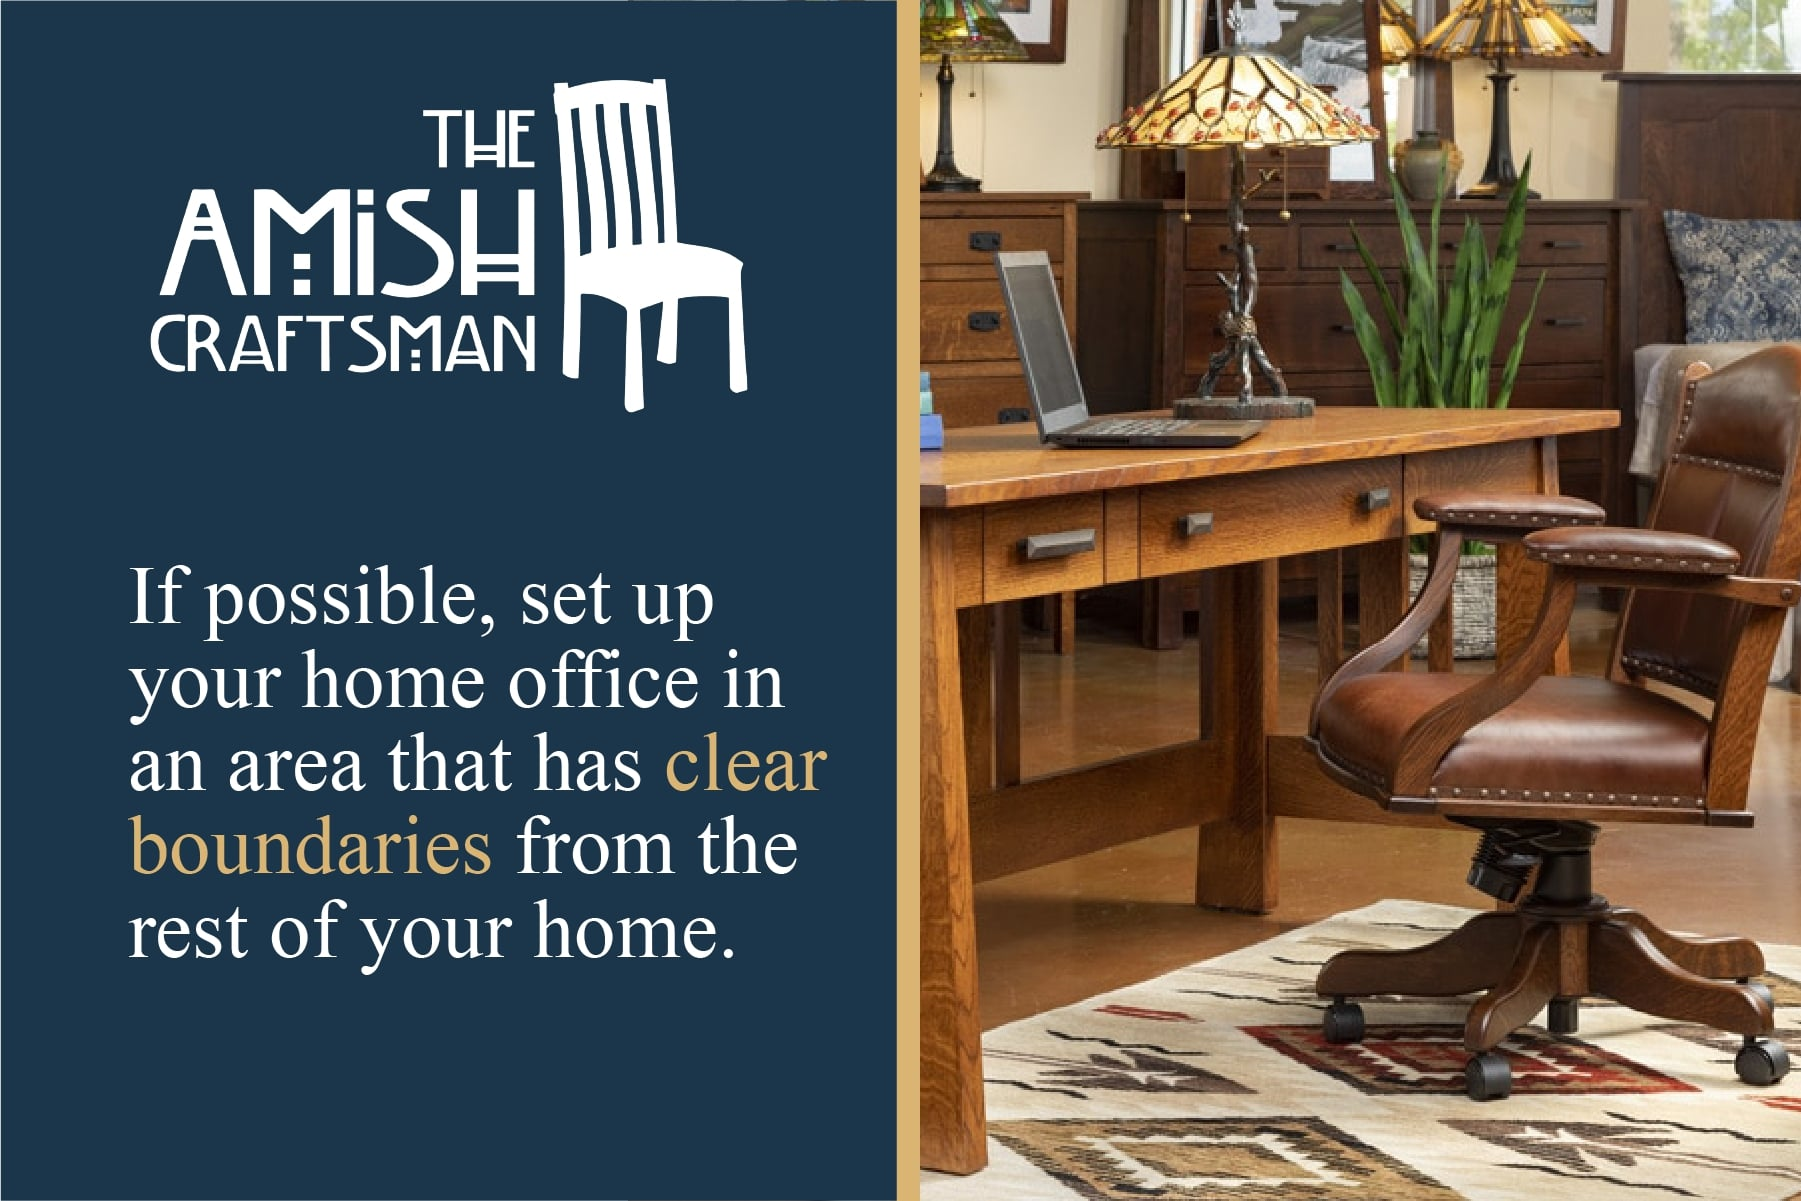 set up your home office in an area that has clear boundaries